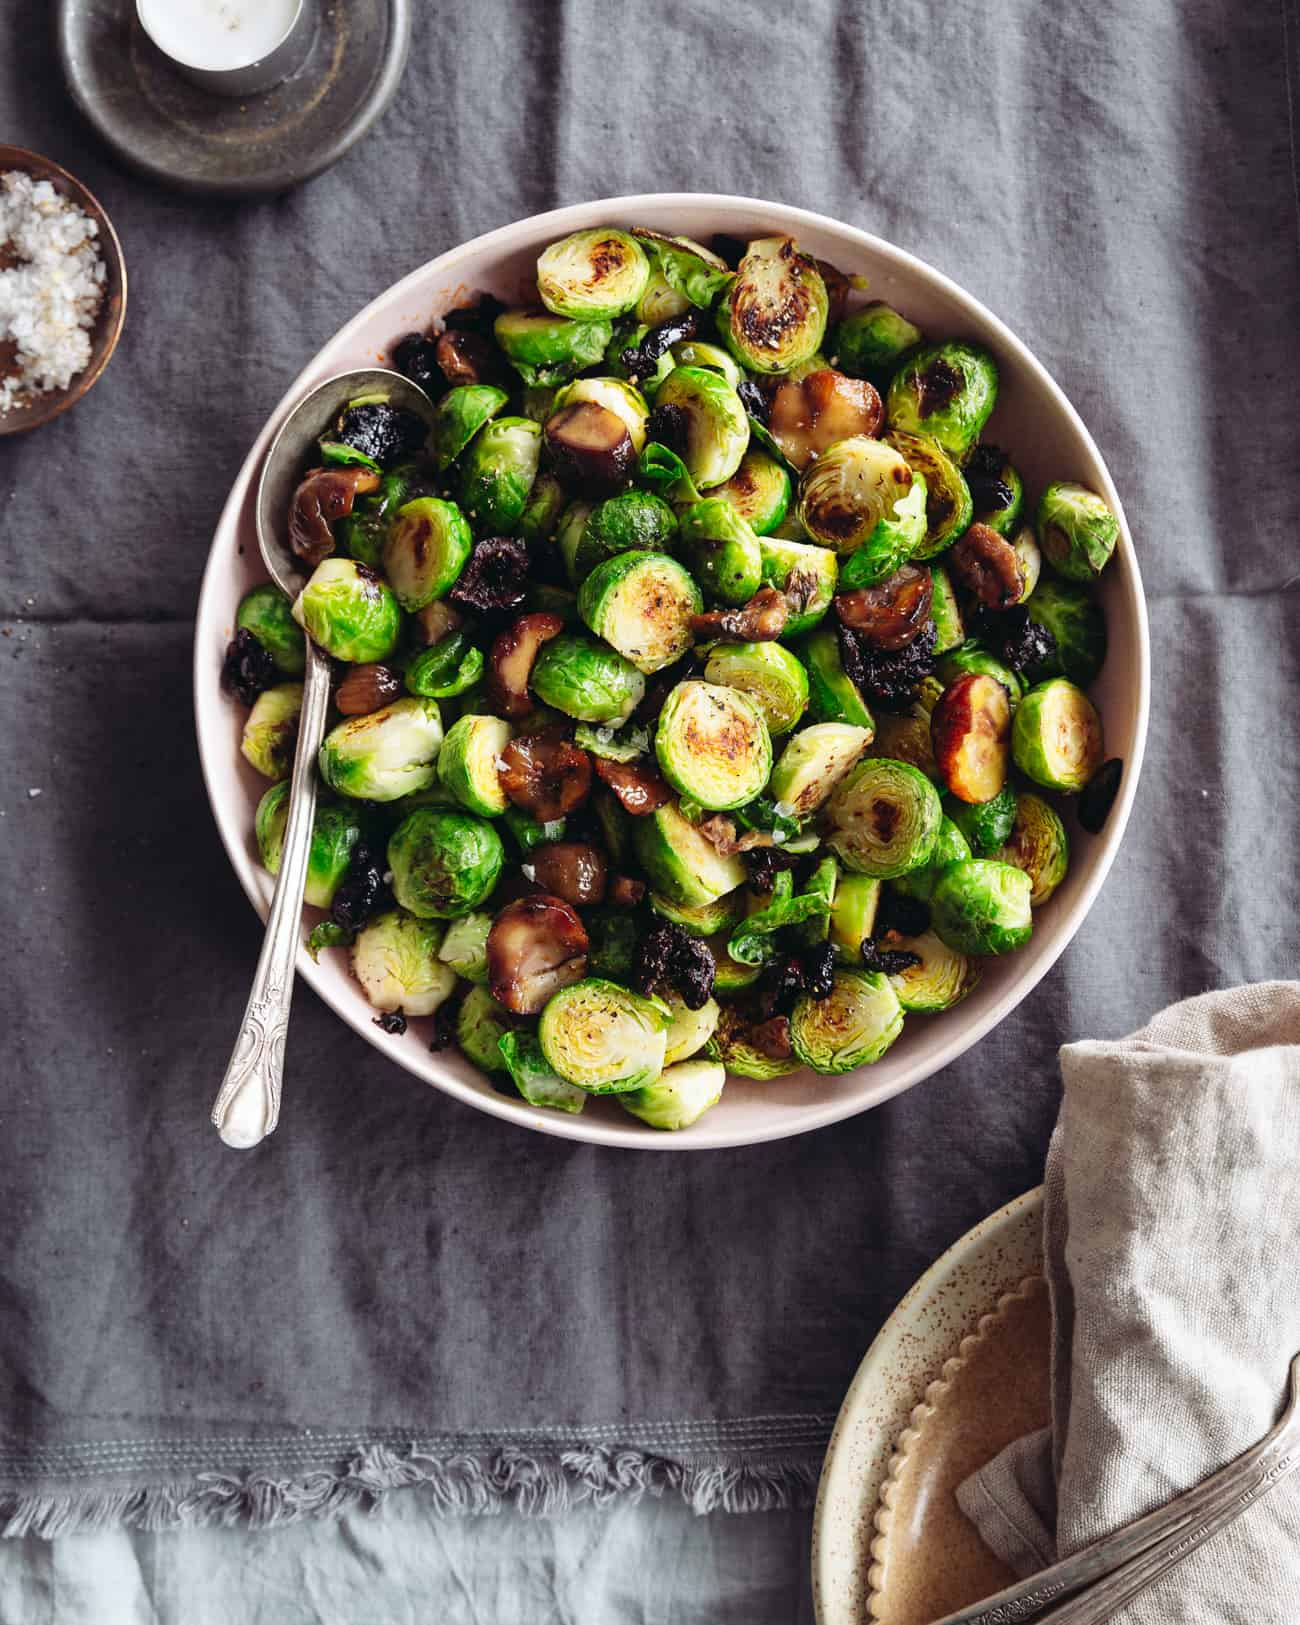 A bowl of roasted Brussels sprouts with chestnuts and smoky olives on a table